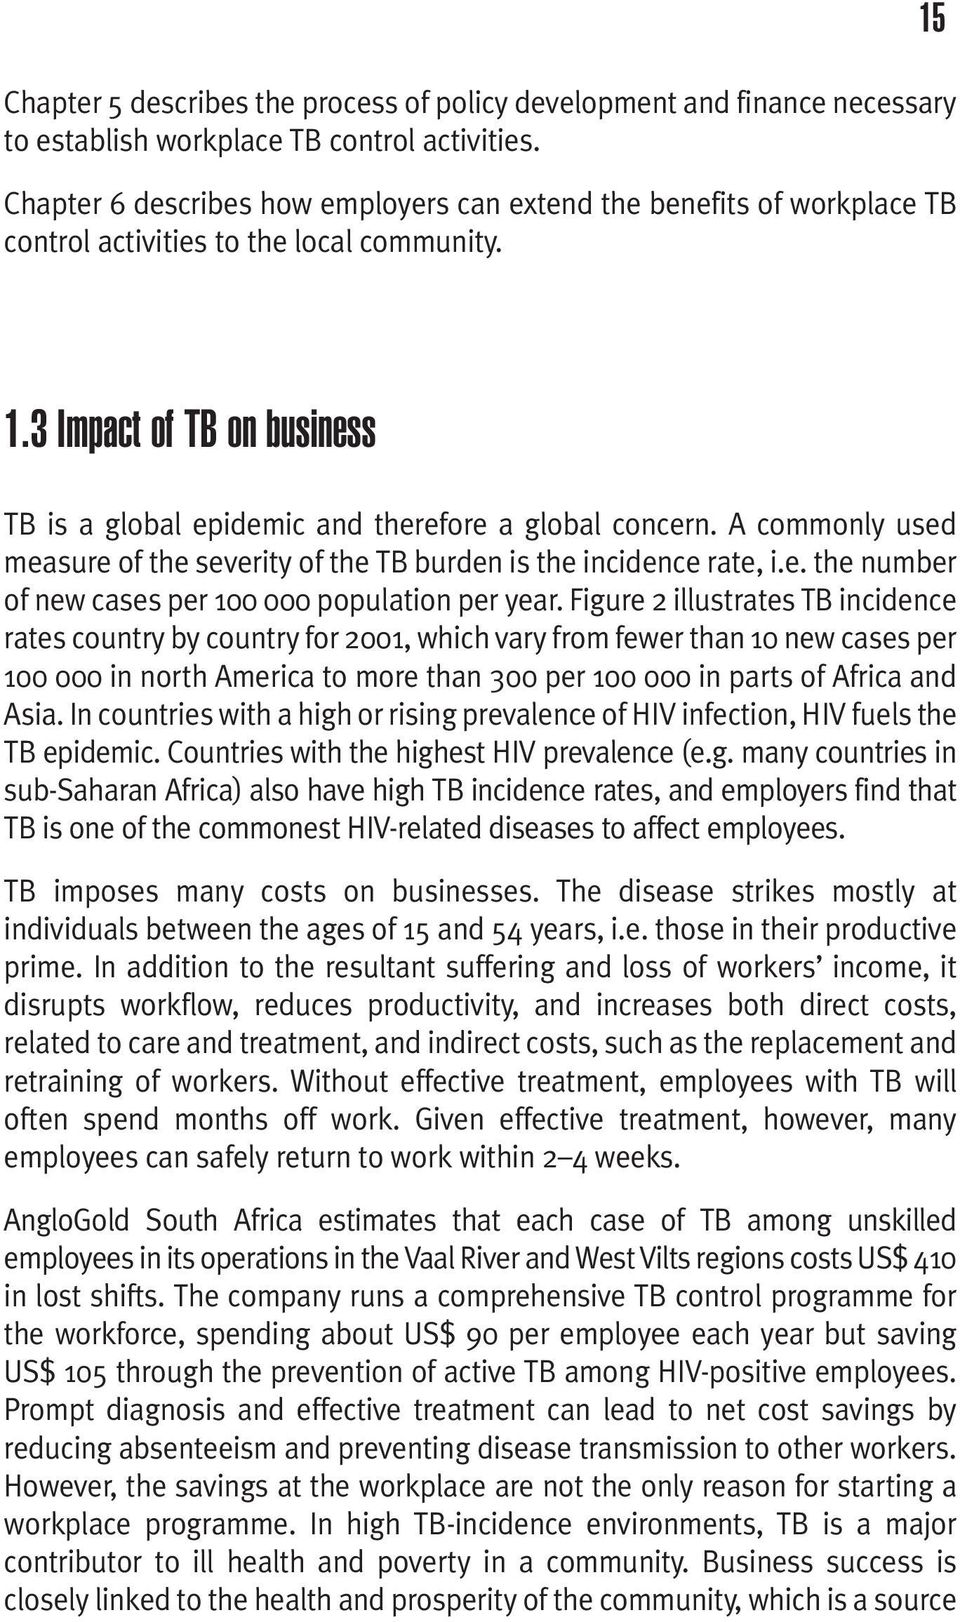 3 Impact of TB on business TB is a global epidemic and therefore a global concern. A commonly used measure of the severity of the TB burden is the incidence rate, i.e. the number of new cases per 100 000 population per year.